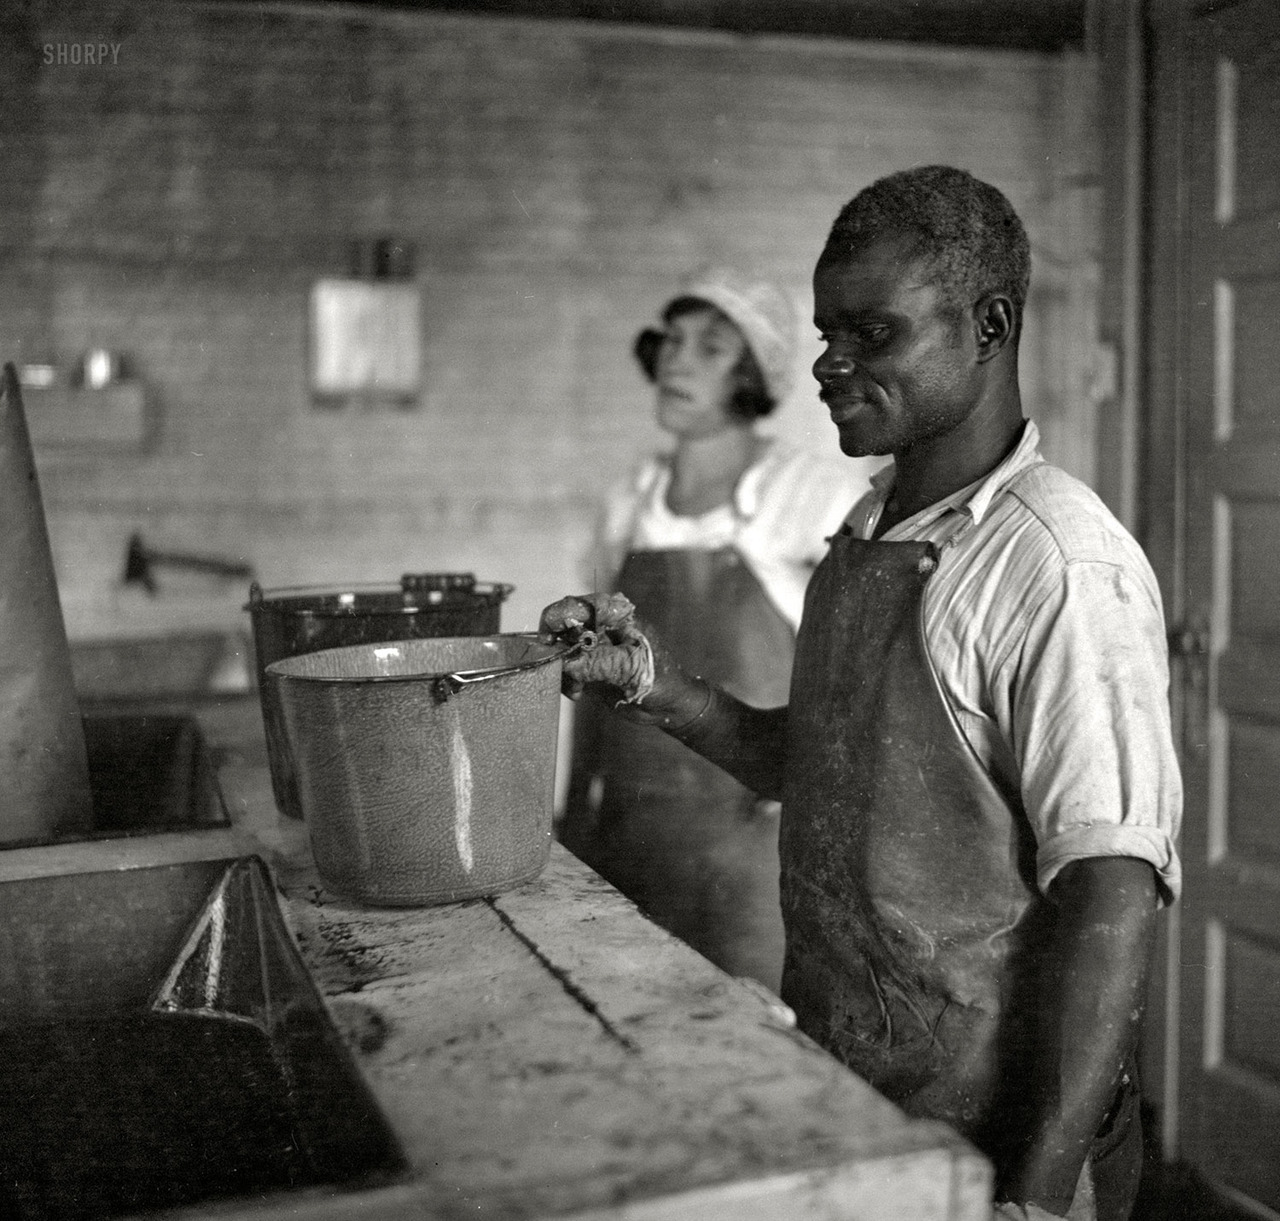 Washing oysters. Maryland, 1936. By Arthur Rostein